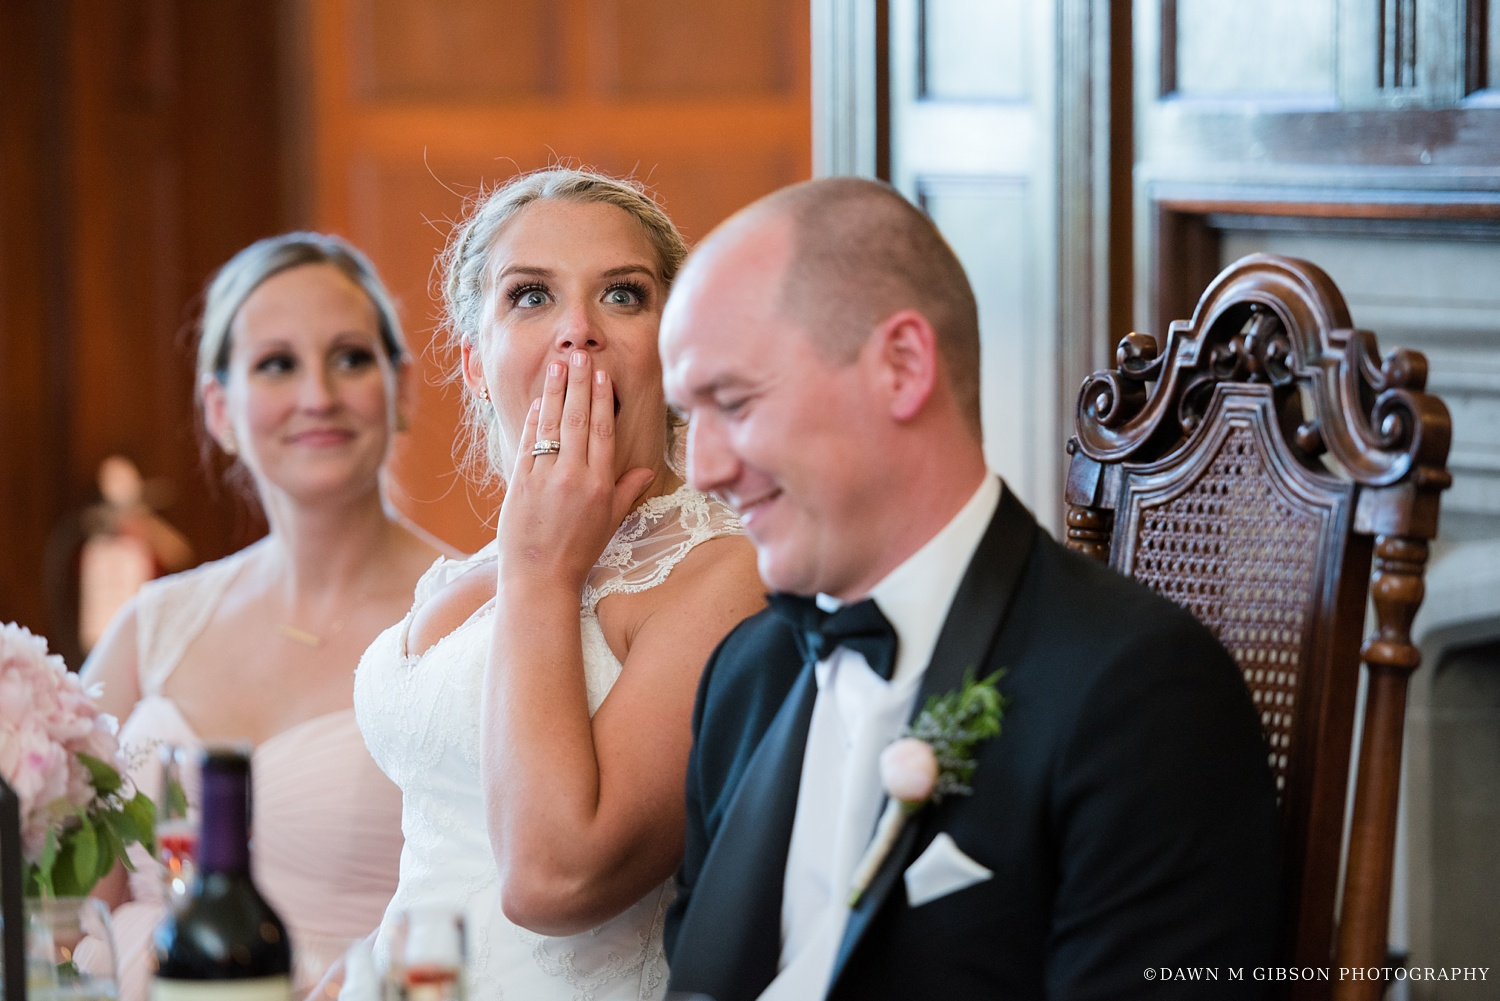 buffalo_wny_rochester_wedding_photographer_dawnmgibsonphotography_strathallan_colgate_rochester_divinity_rochester_wedding_venues_0074.jpg